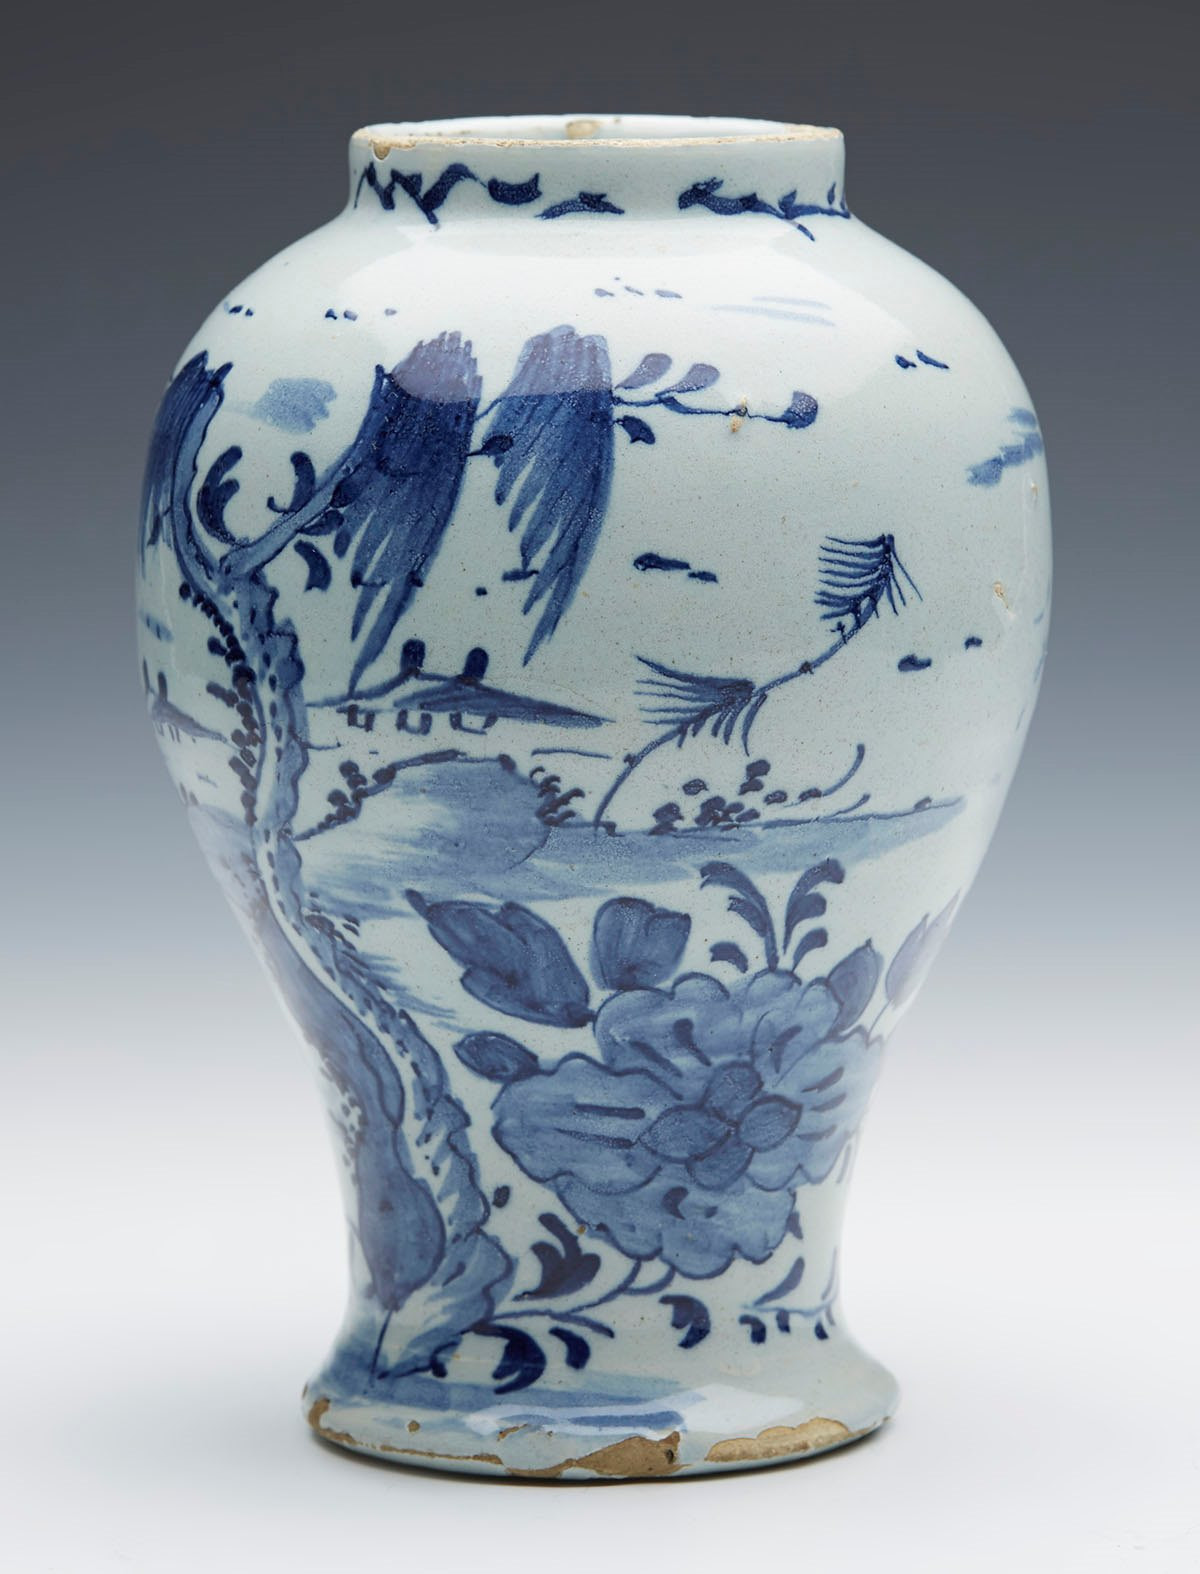 royal delft tulip vase of buy blue delft pottery vases ebay within antique delft chinoiserie design blue white vase 18th